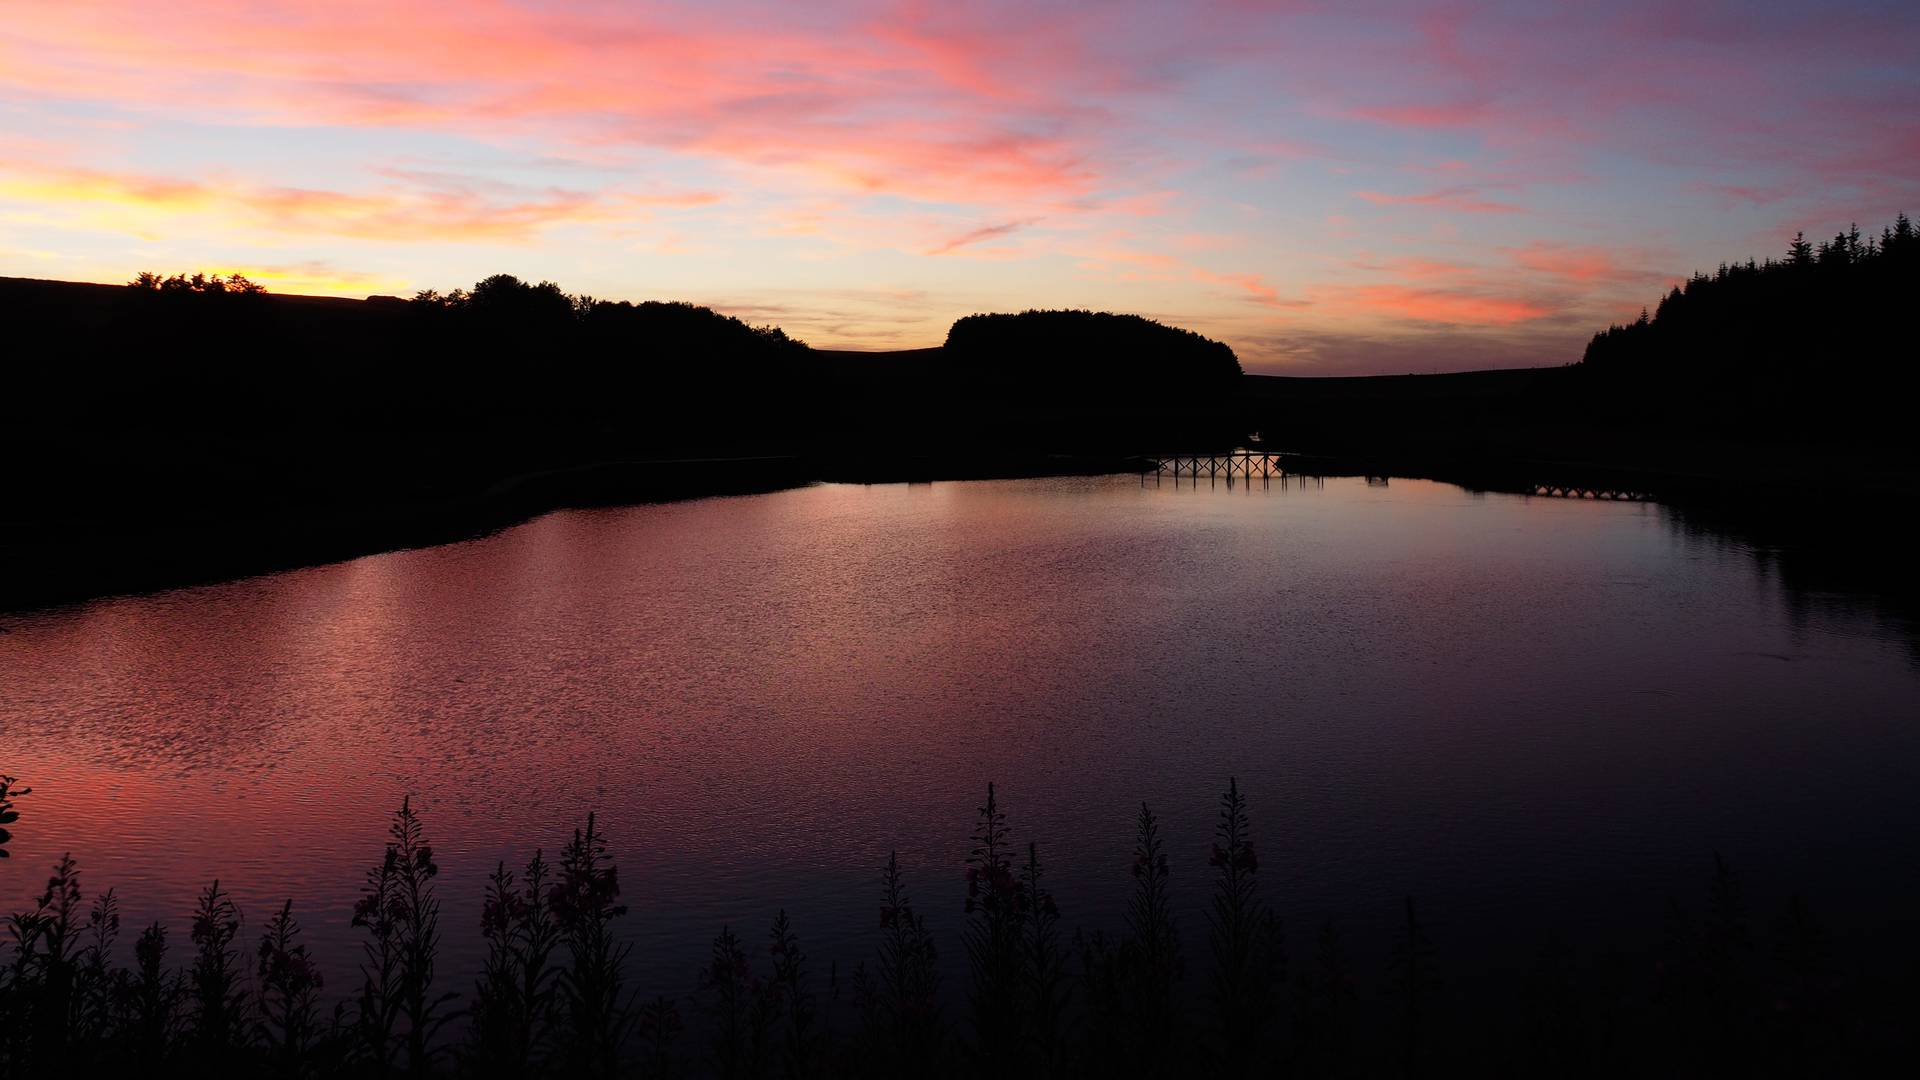 Bonnecombe lake in the twilight